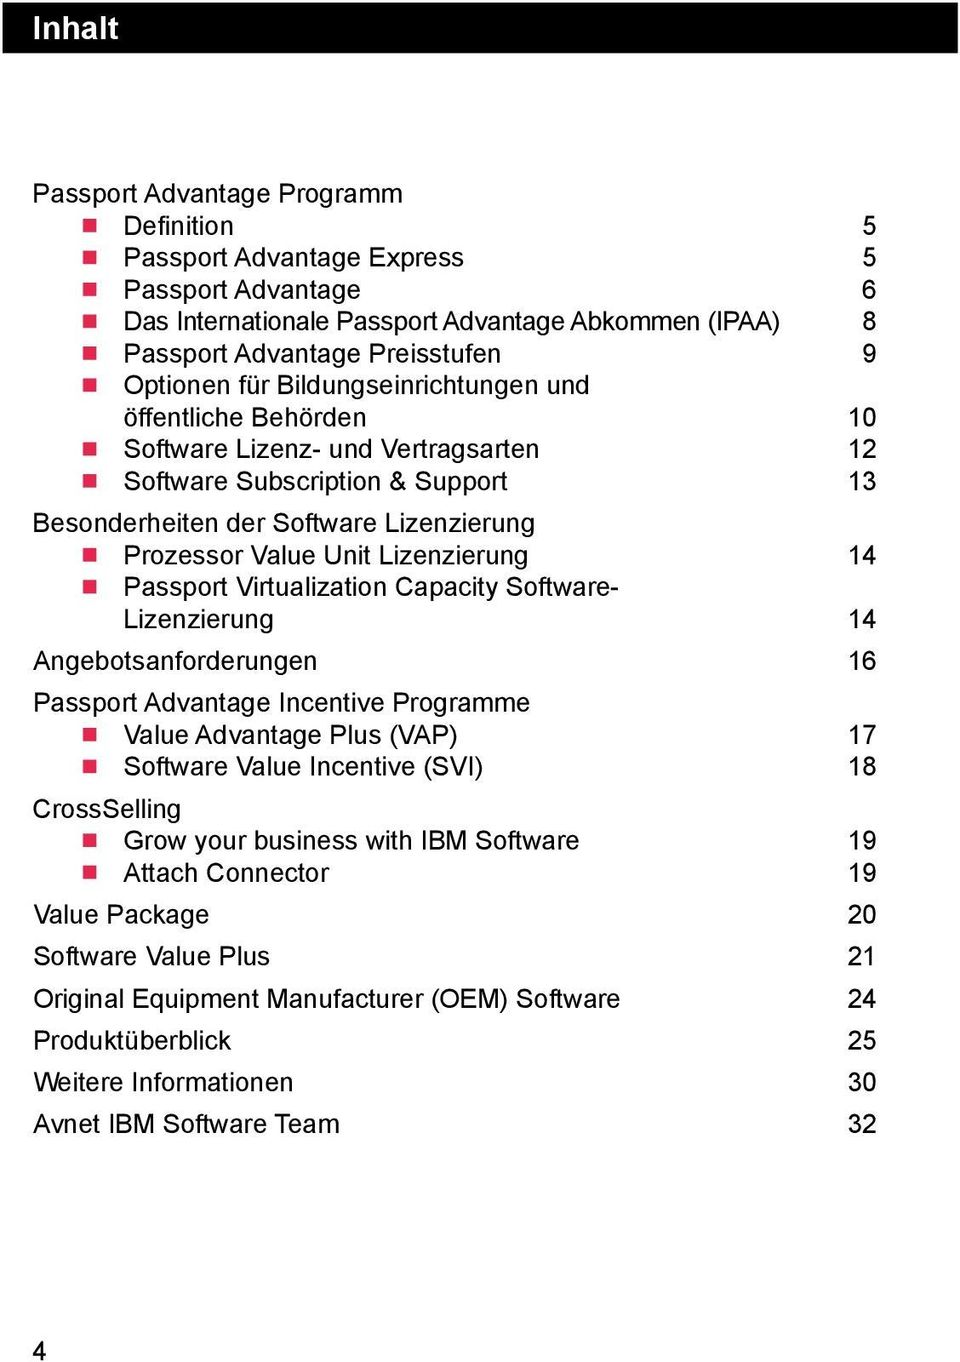 14 Passport Virtualization Capacity Software- Lizenzierung 14 Angebotsanforderungen 16 Passport Advantage Incentive Programme Value Advantage Plus (VAP) 17 Software Value Incentive (SVI) 18